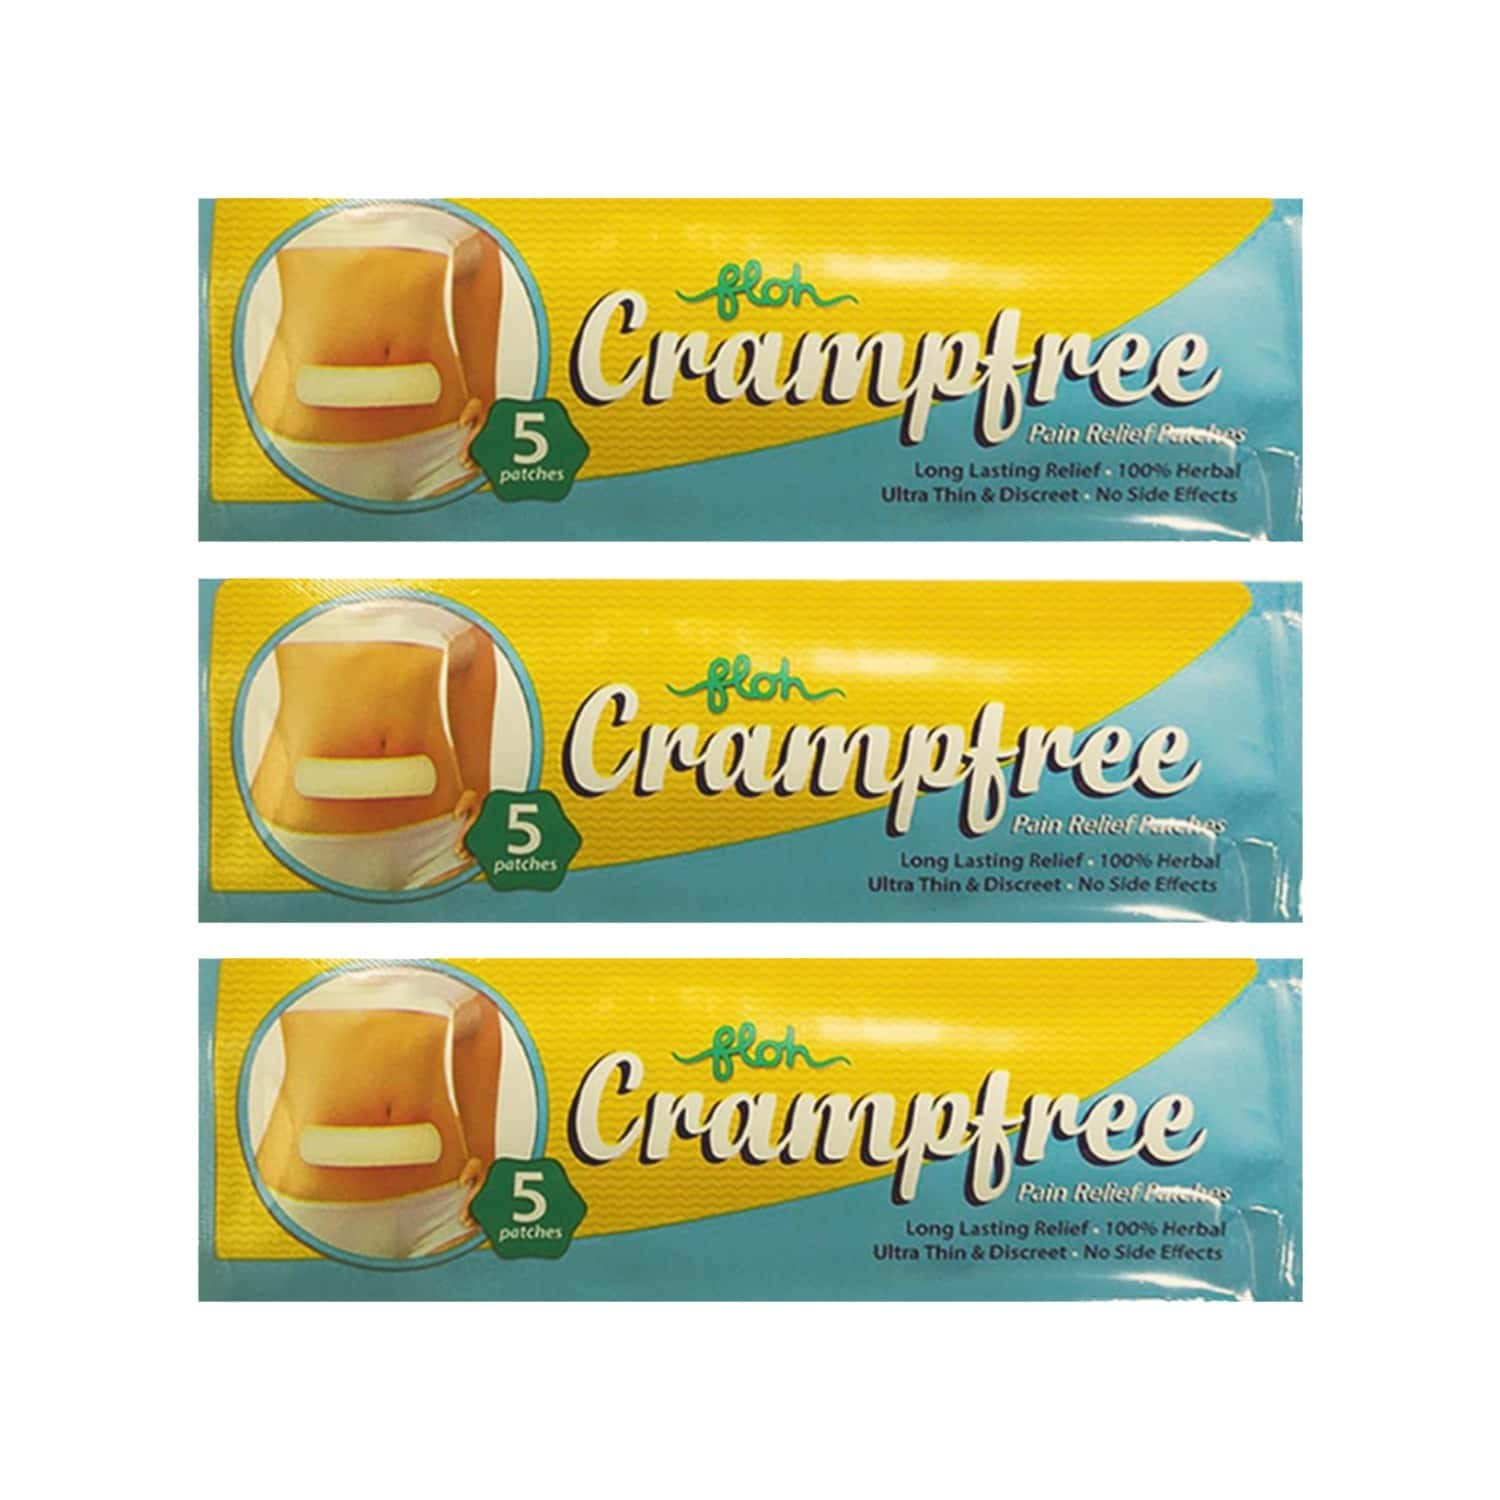 Floh Crampfree Pain Relief Patch, Pack Of 3